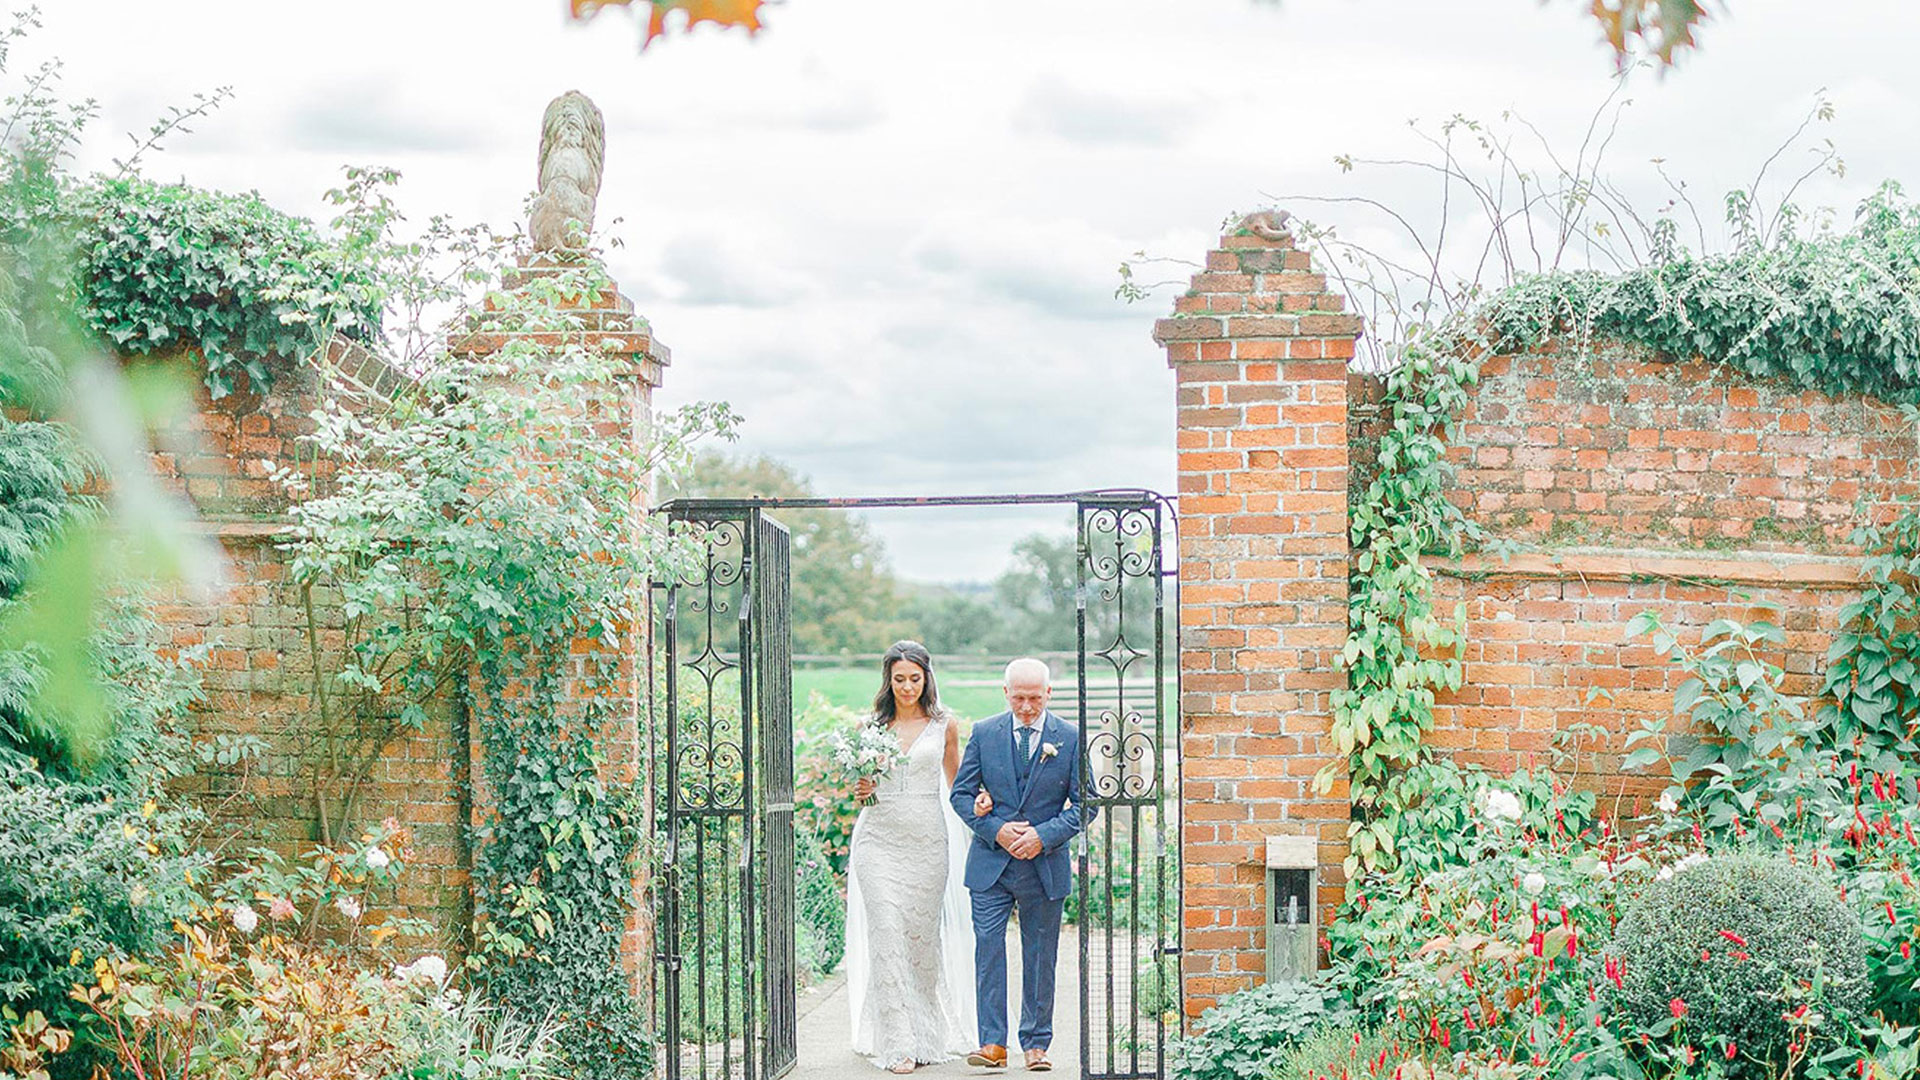 A bride and her father make their way down the Long Walk wedding aisle - wedding venues in Essex